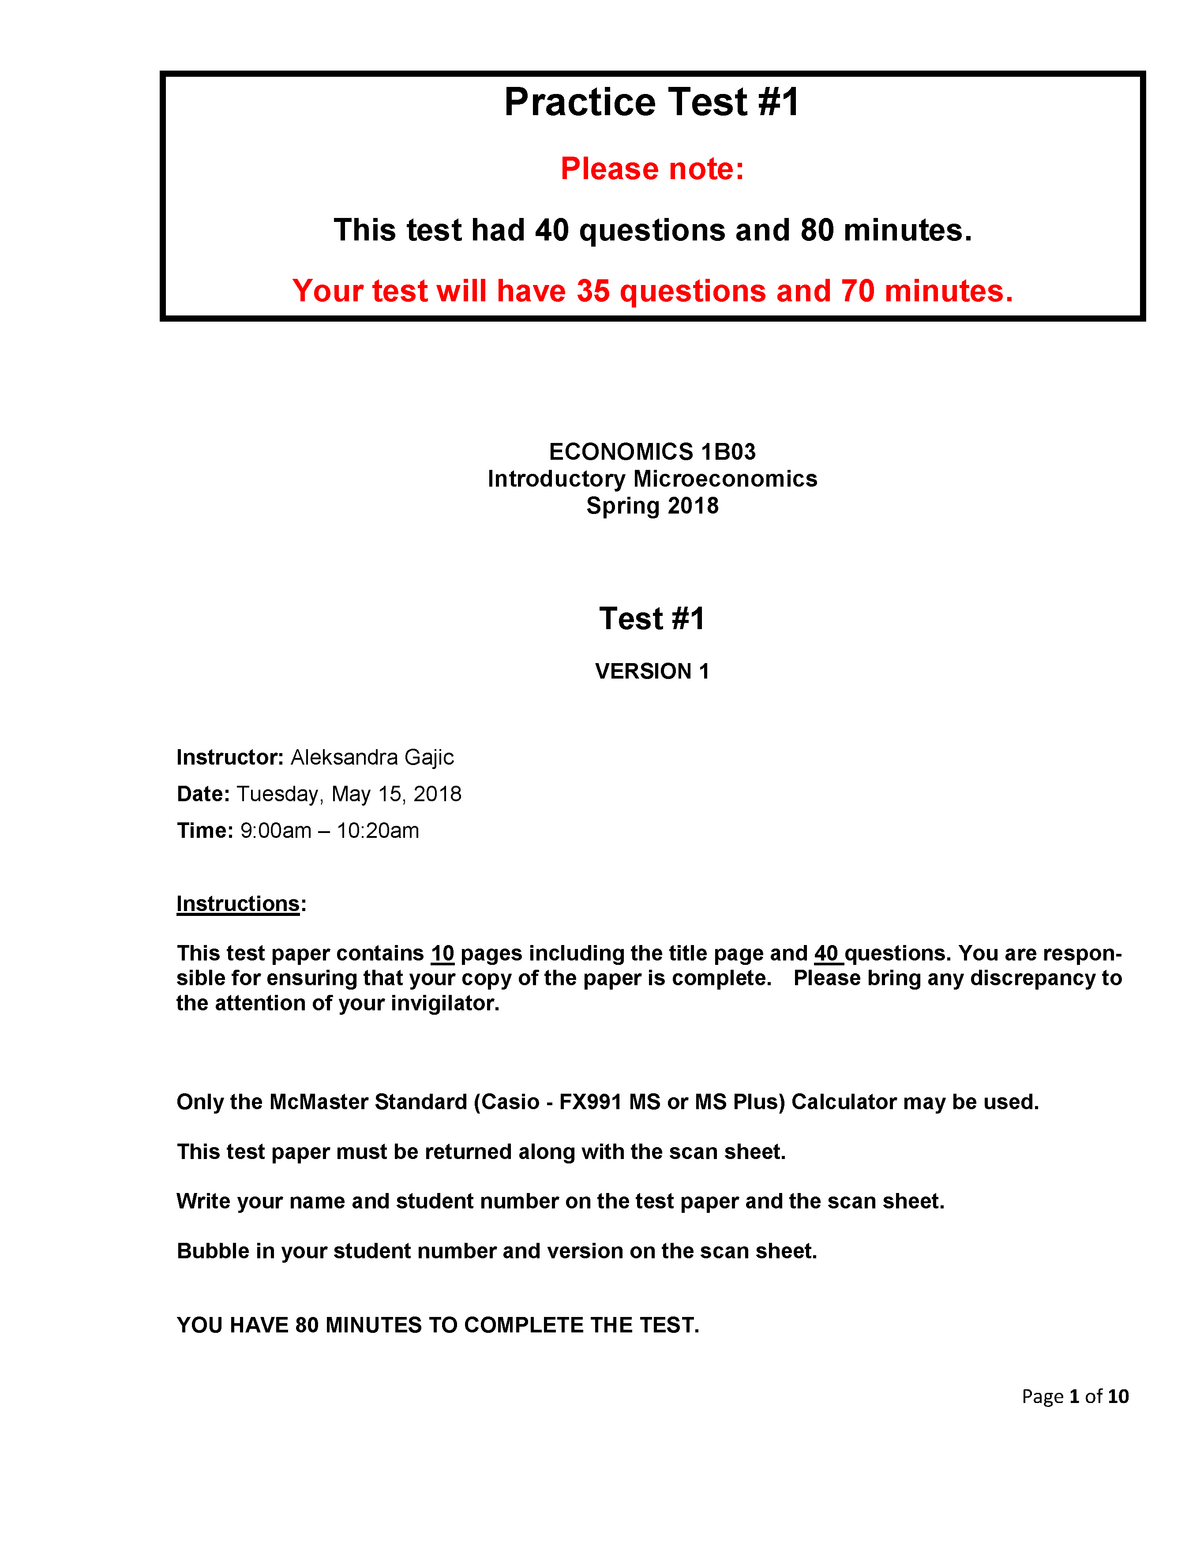 Practice Test for econ 1b03 - 1B03 Micro Econ - McMaster